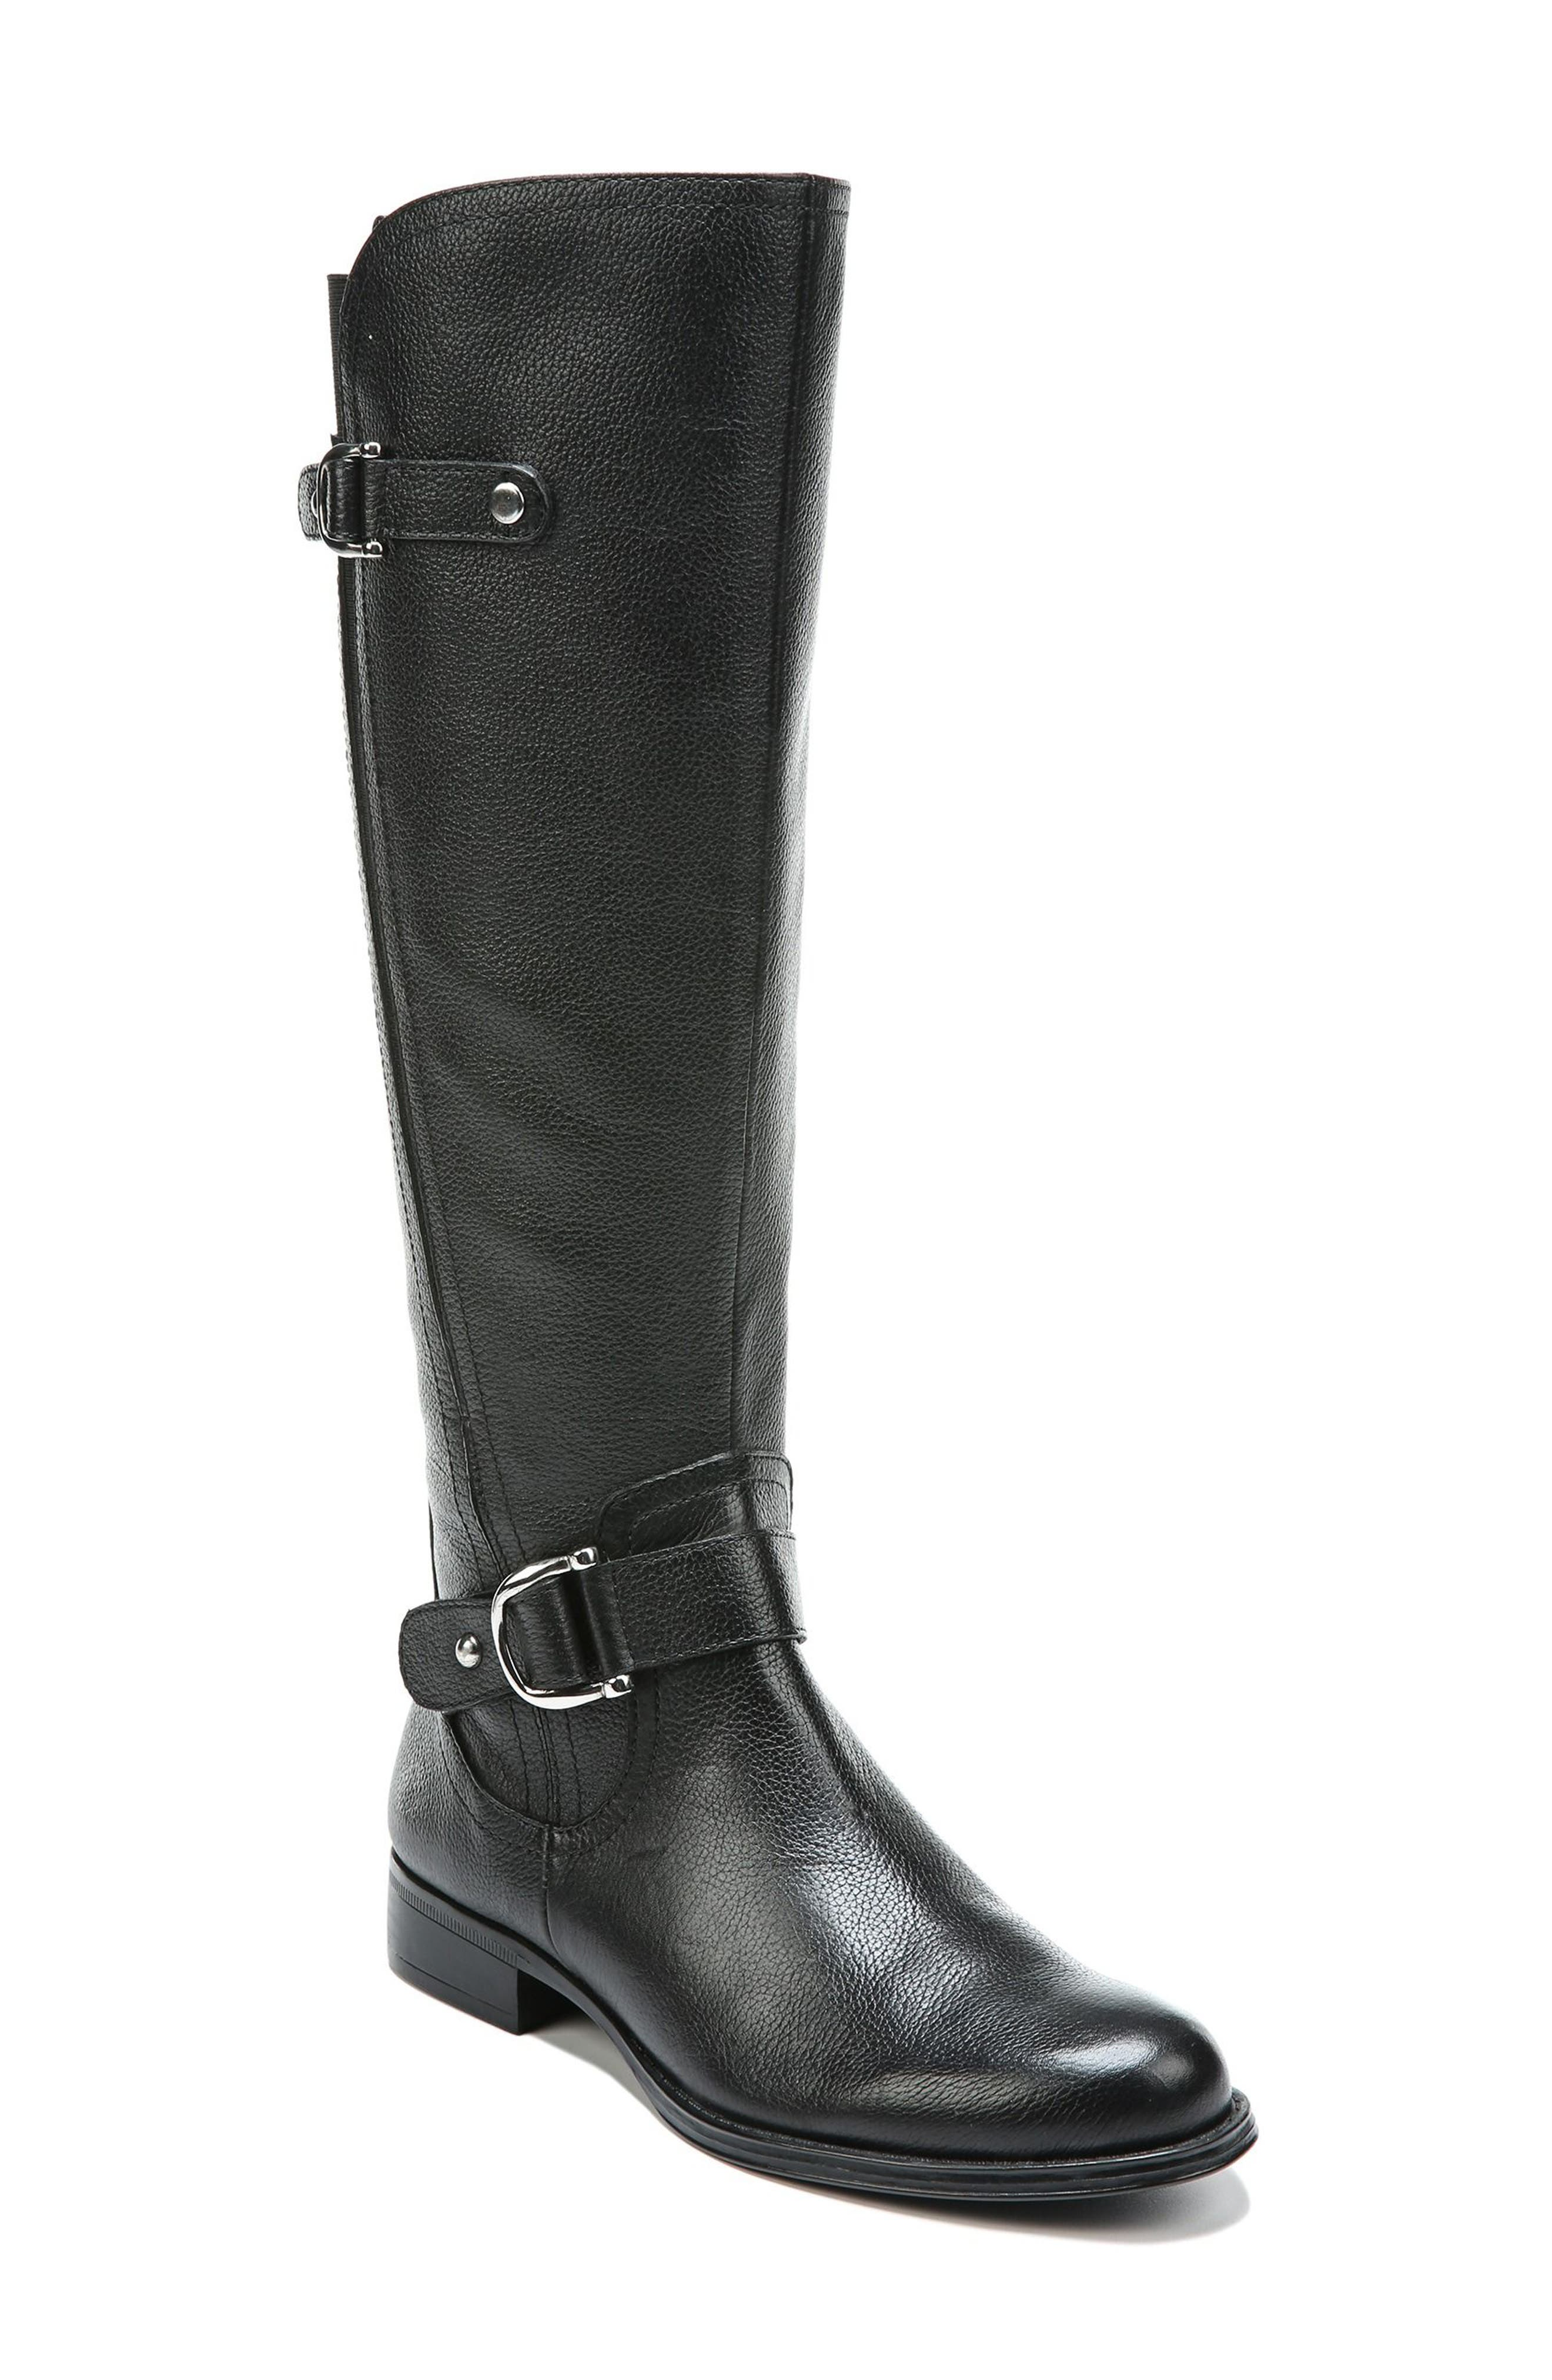 Alternate Image 1 Selected - Naturalizer Jenelle Tall Boot (Women) (Regular & Wide Calf)